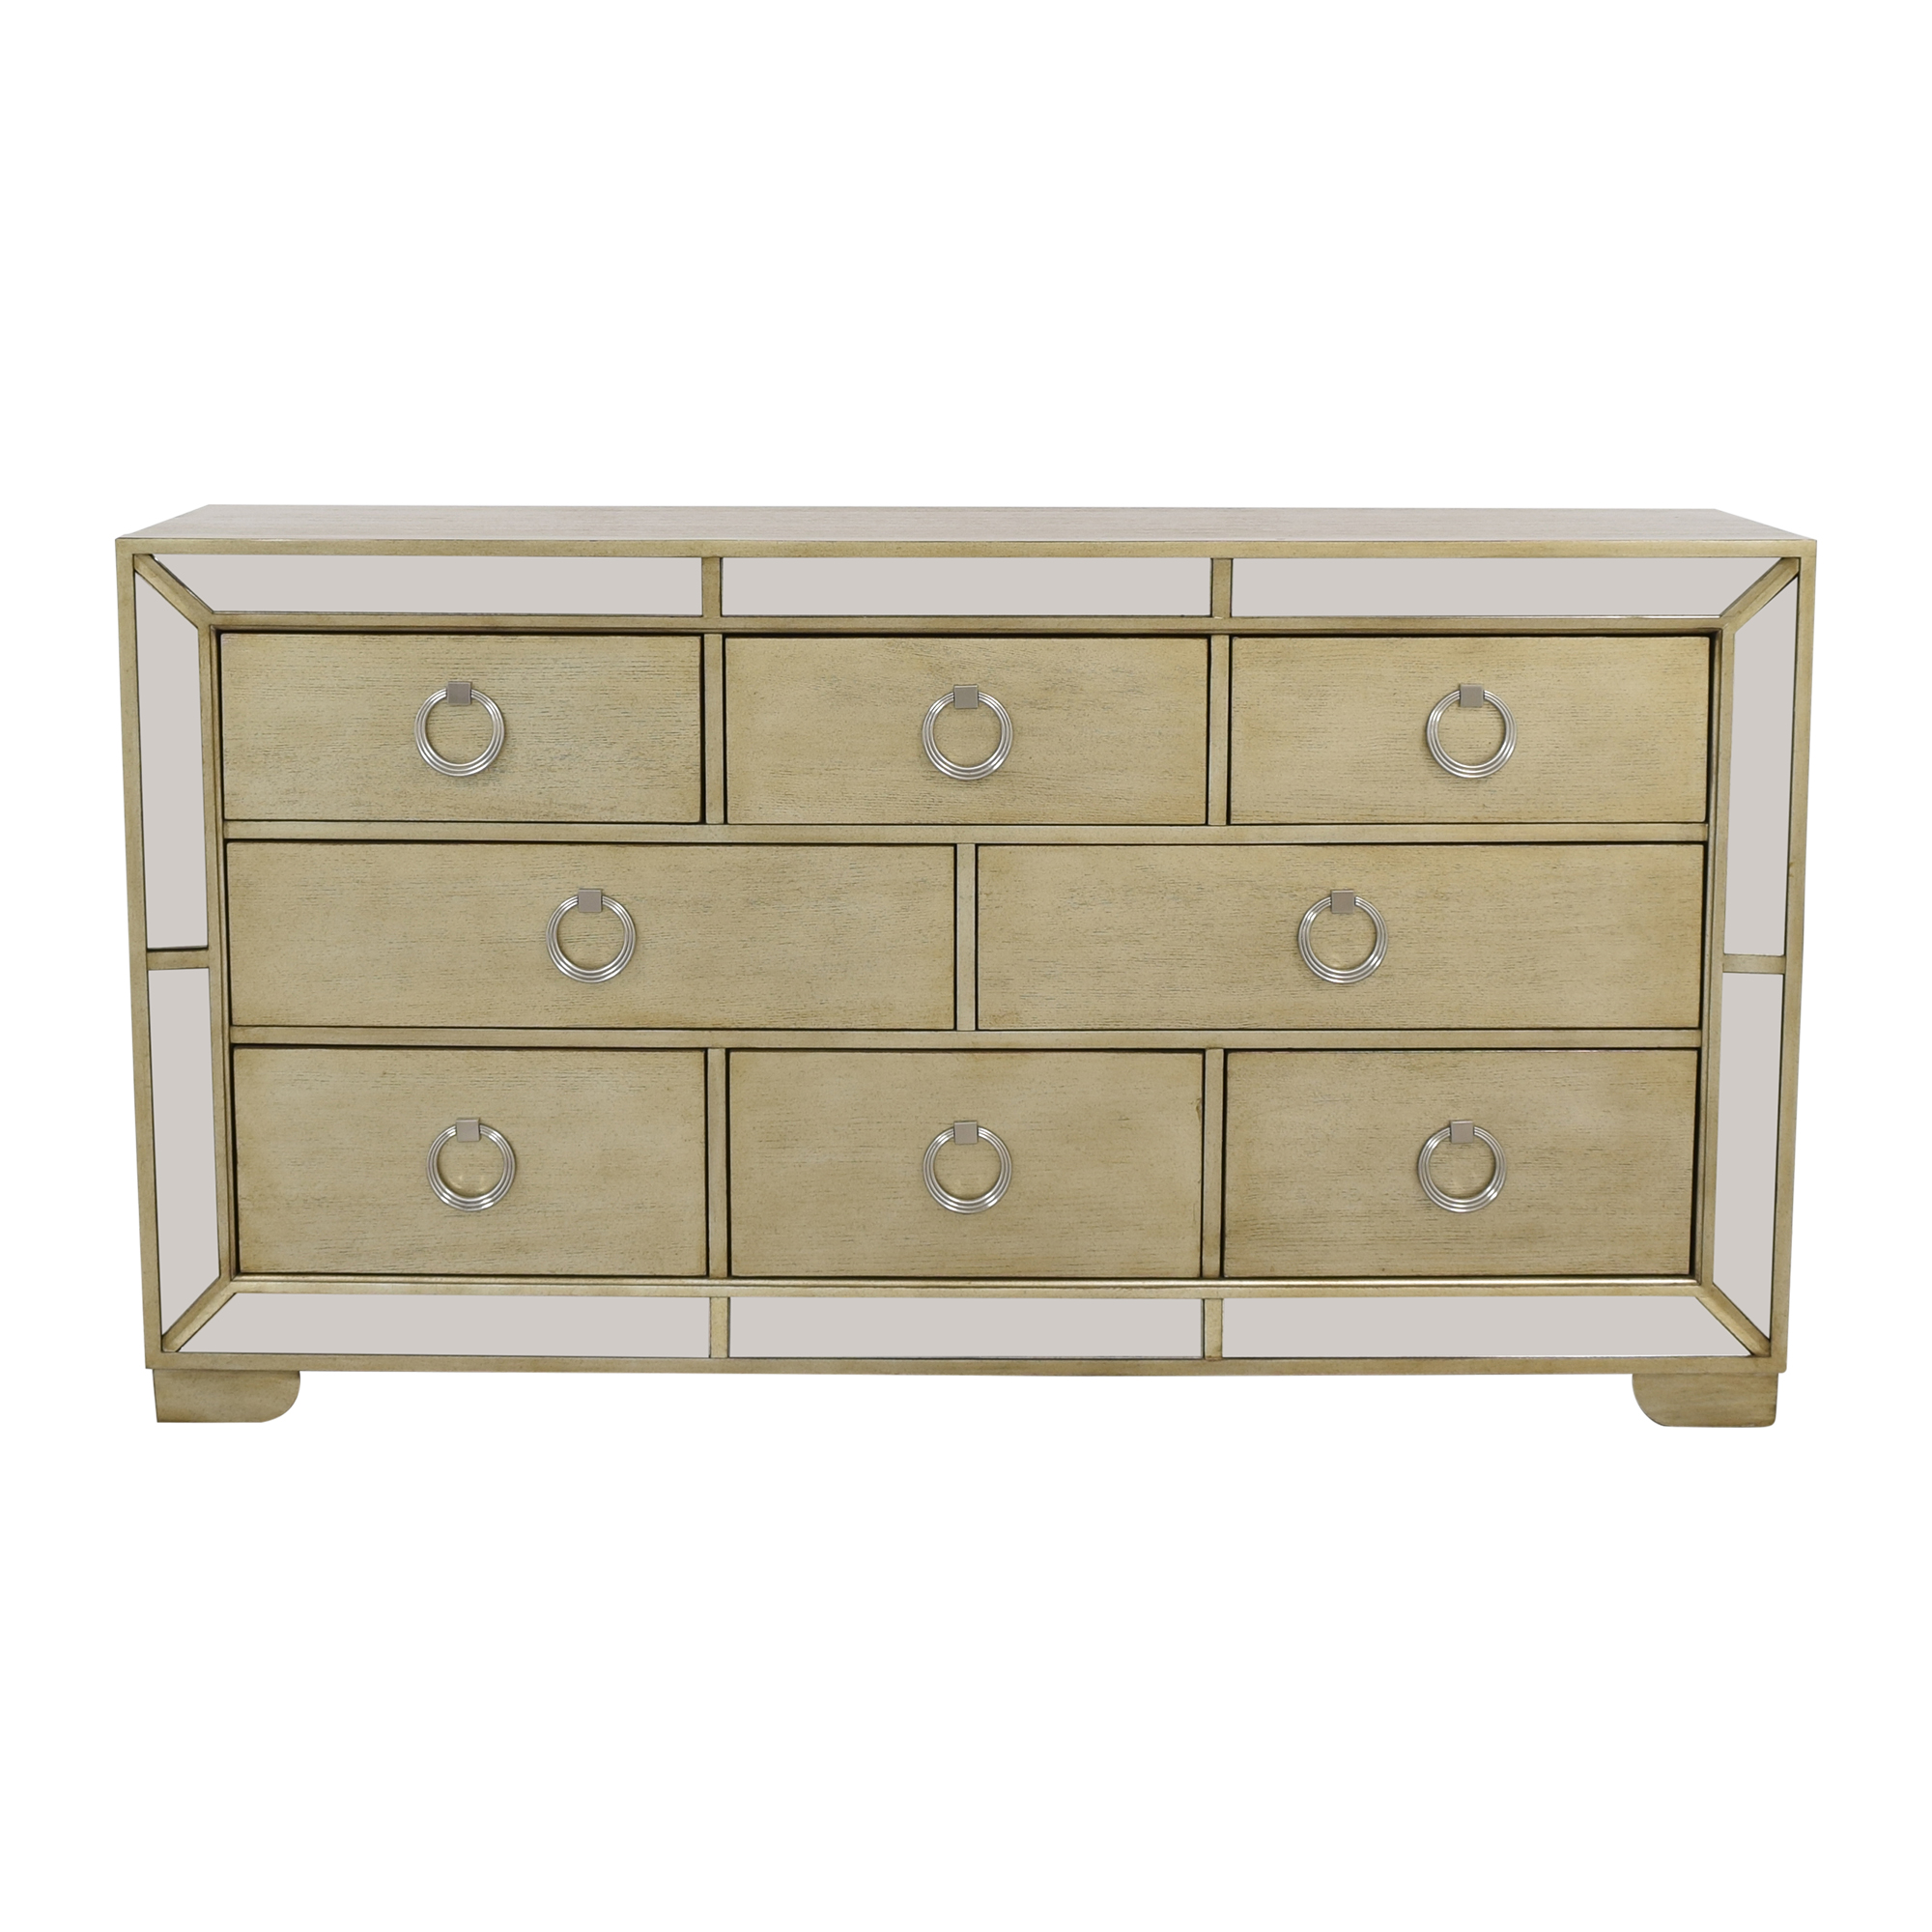 Macy's Macy's Ailey Eight Drawer Dresser nj